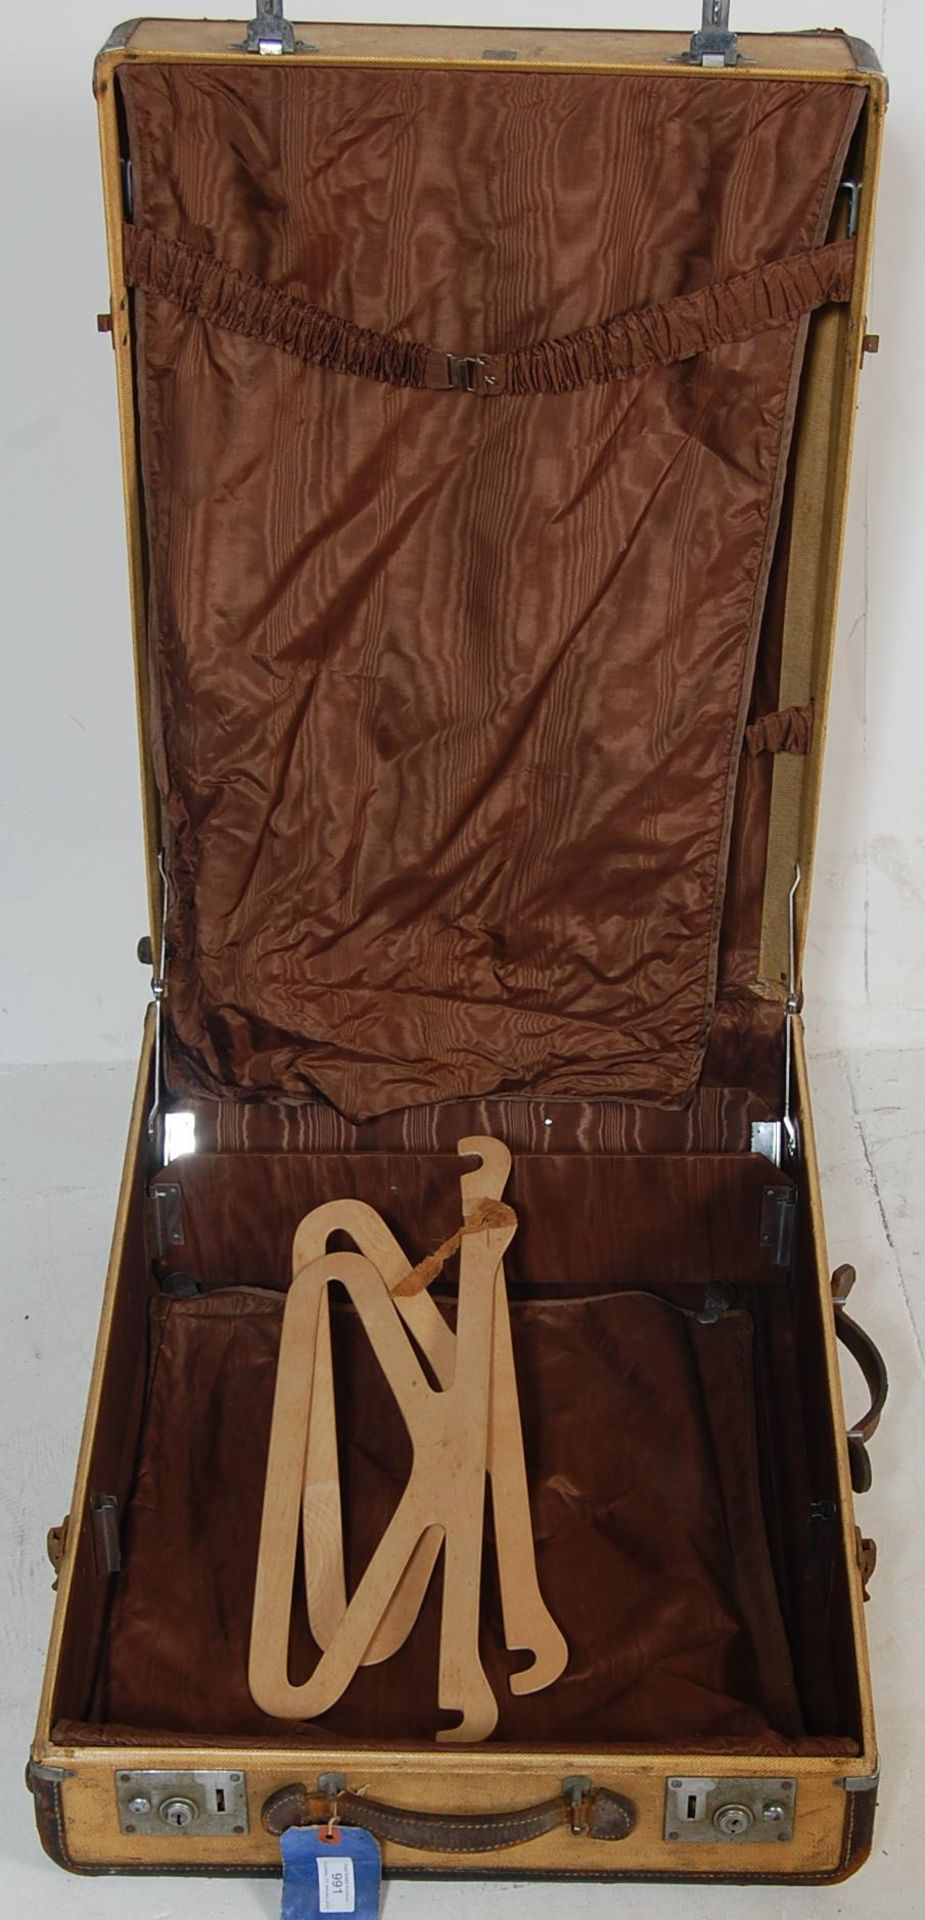 COLLECTION OF THREE EARLY 20TH CENTURY STEAMER TRUNKS - Image 4 of 12